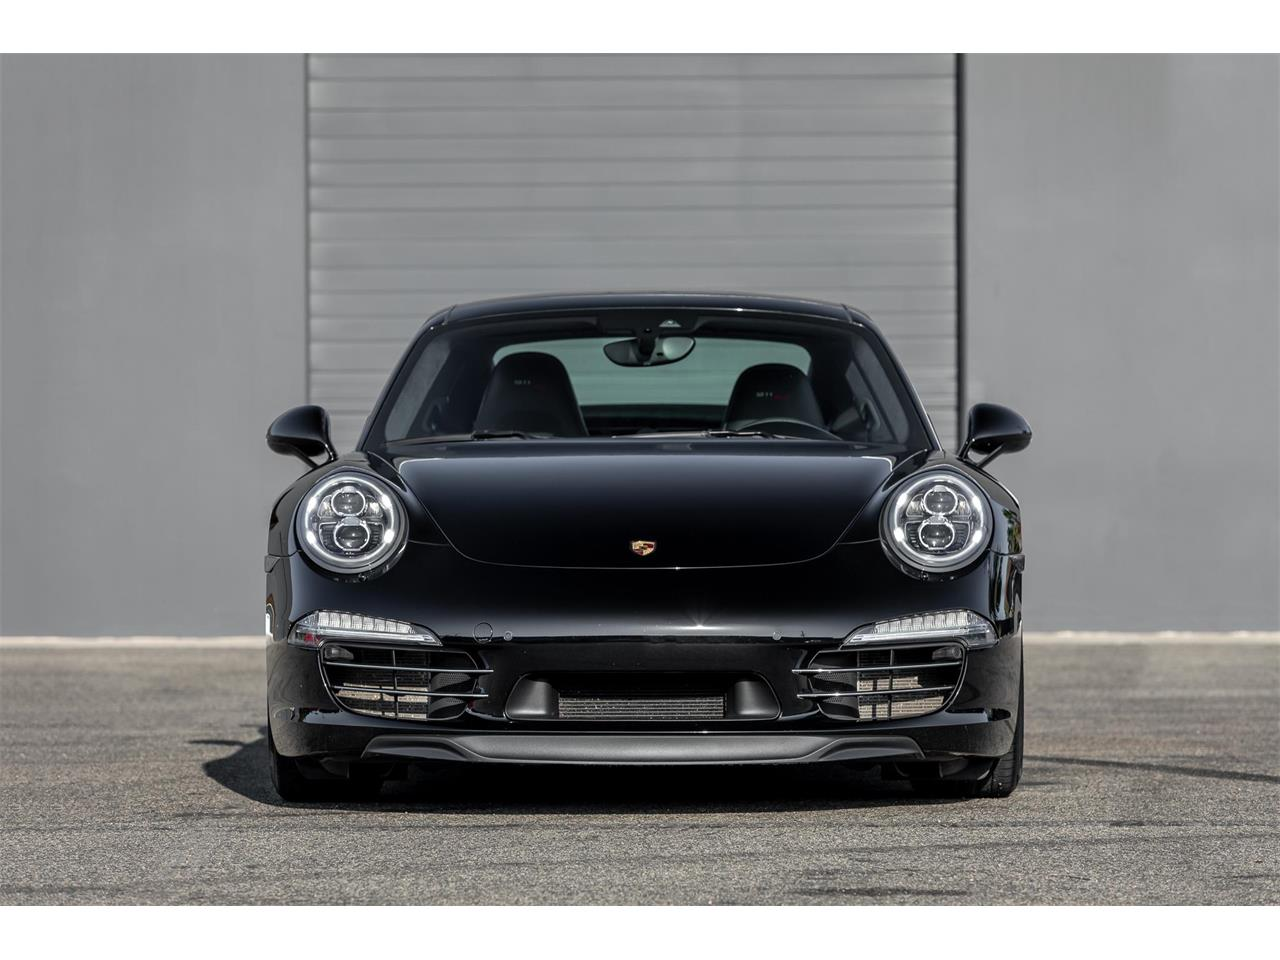 Large Picture of 2014 Porsche 911 located in California Auction Vehicle Offered by Bring A Trailer - R321